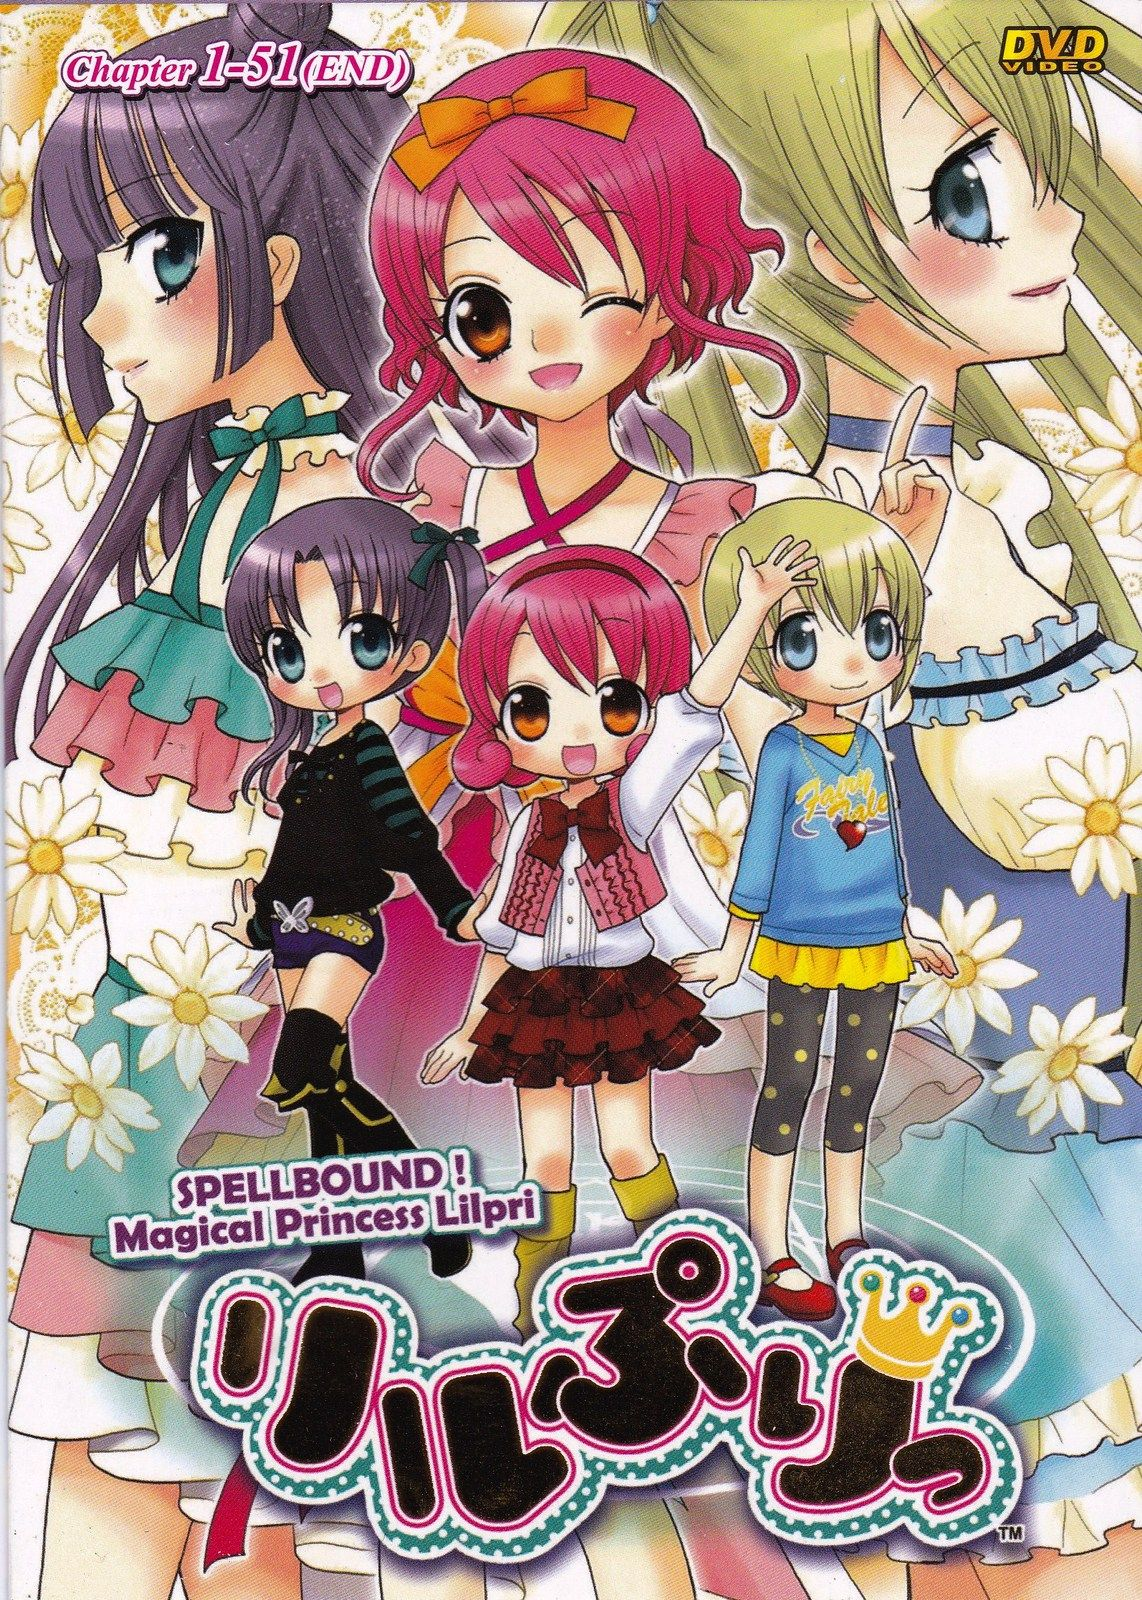 DVD ANIME Hime Chen! Otogi Chikku Idol Lilpri Vol.151End